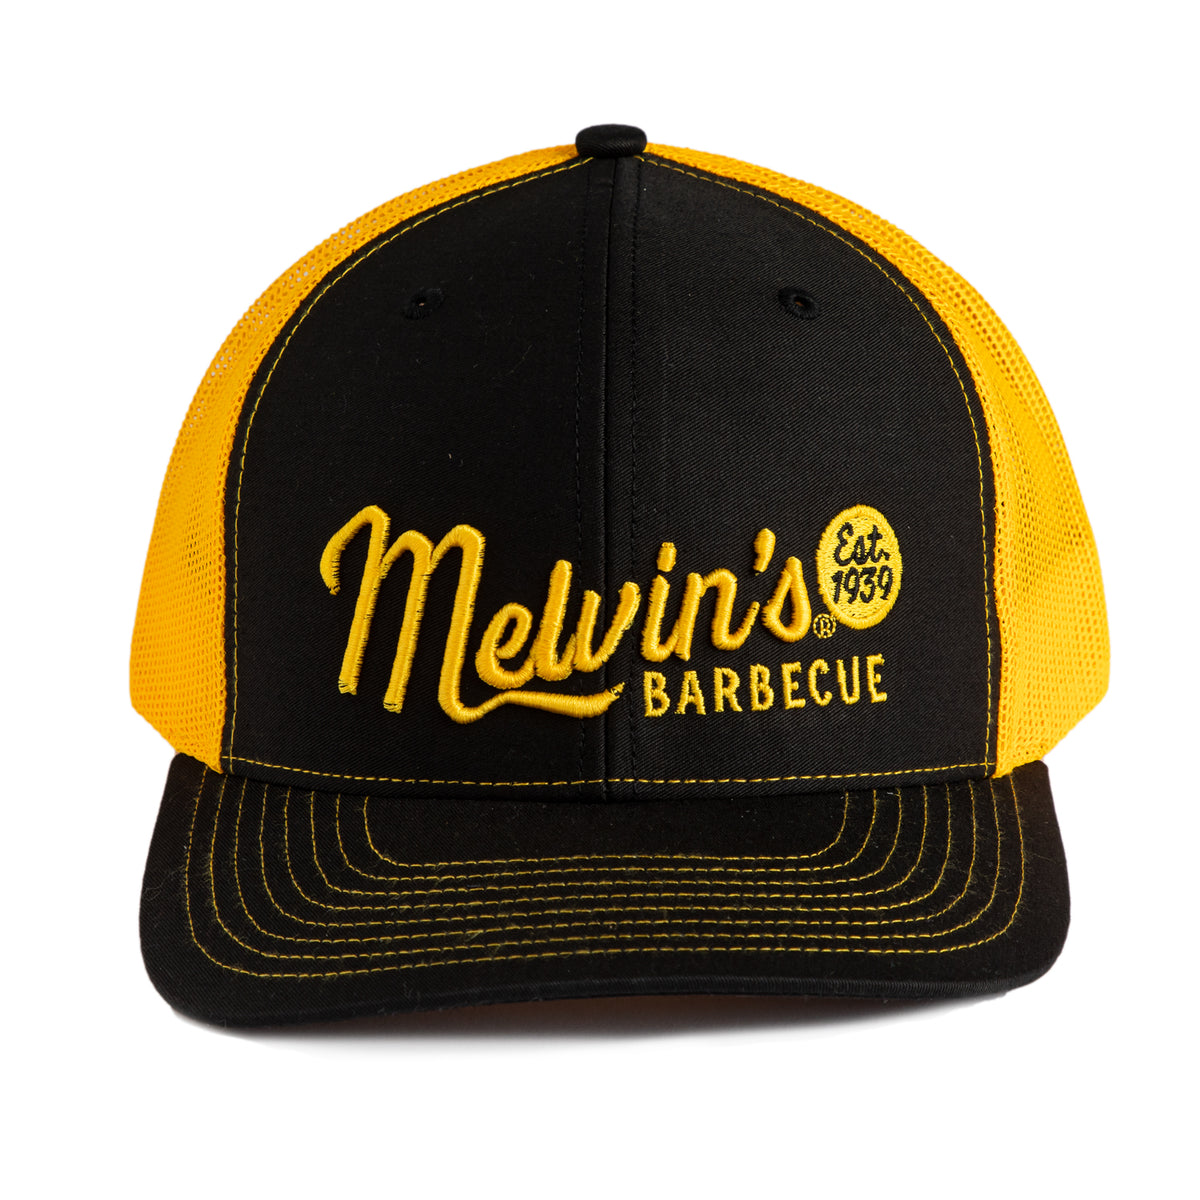 melvin's gold/black richardson stitch hat